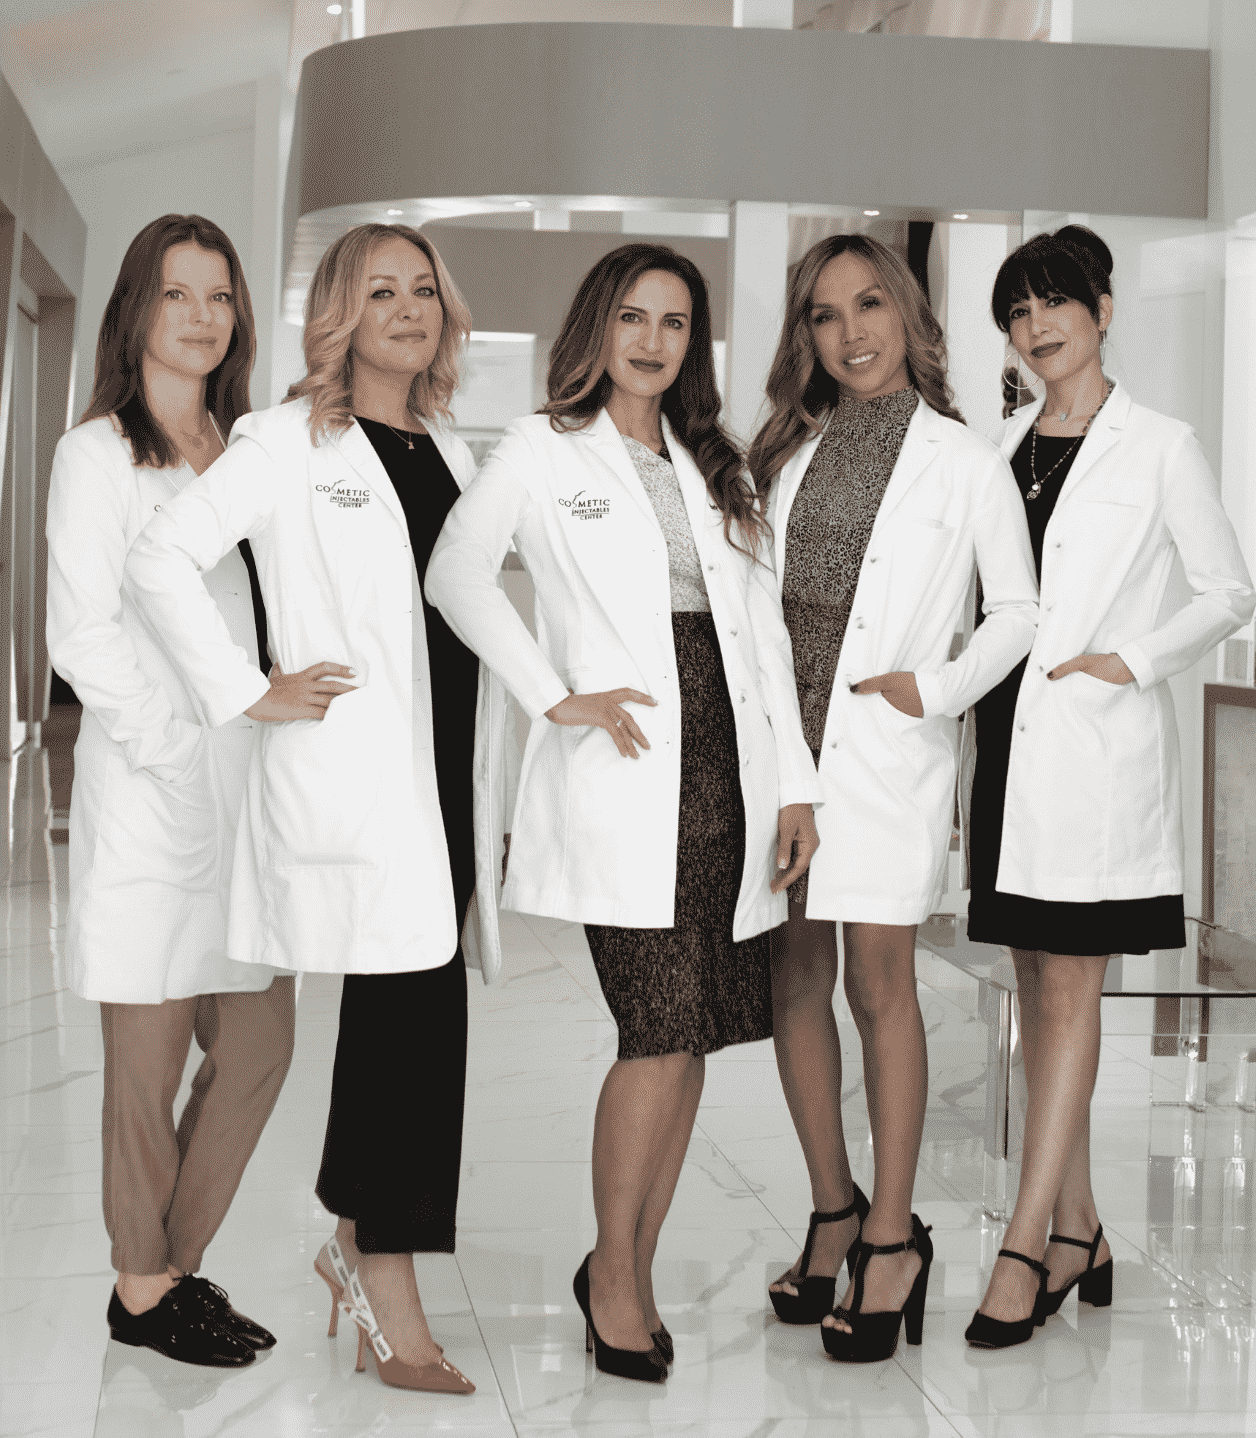 Cosmetic Injectables Center Staff Sherman Oaks